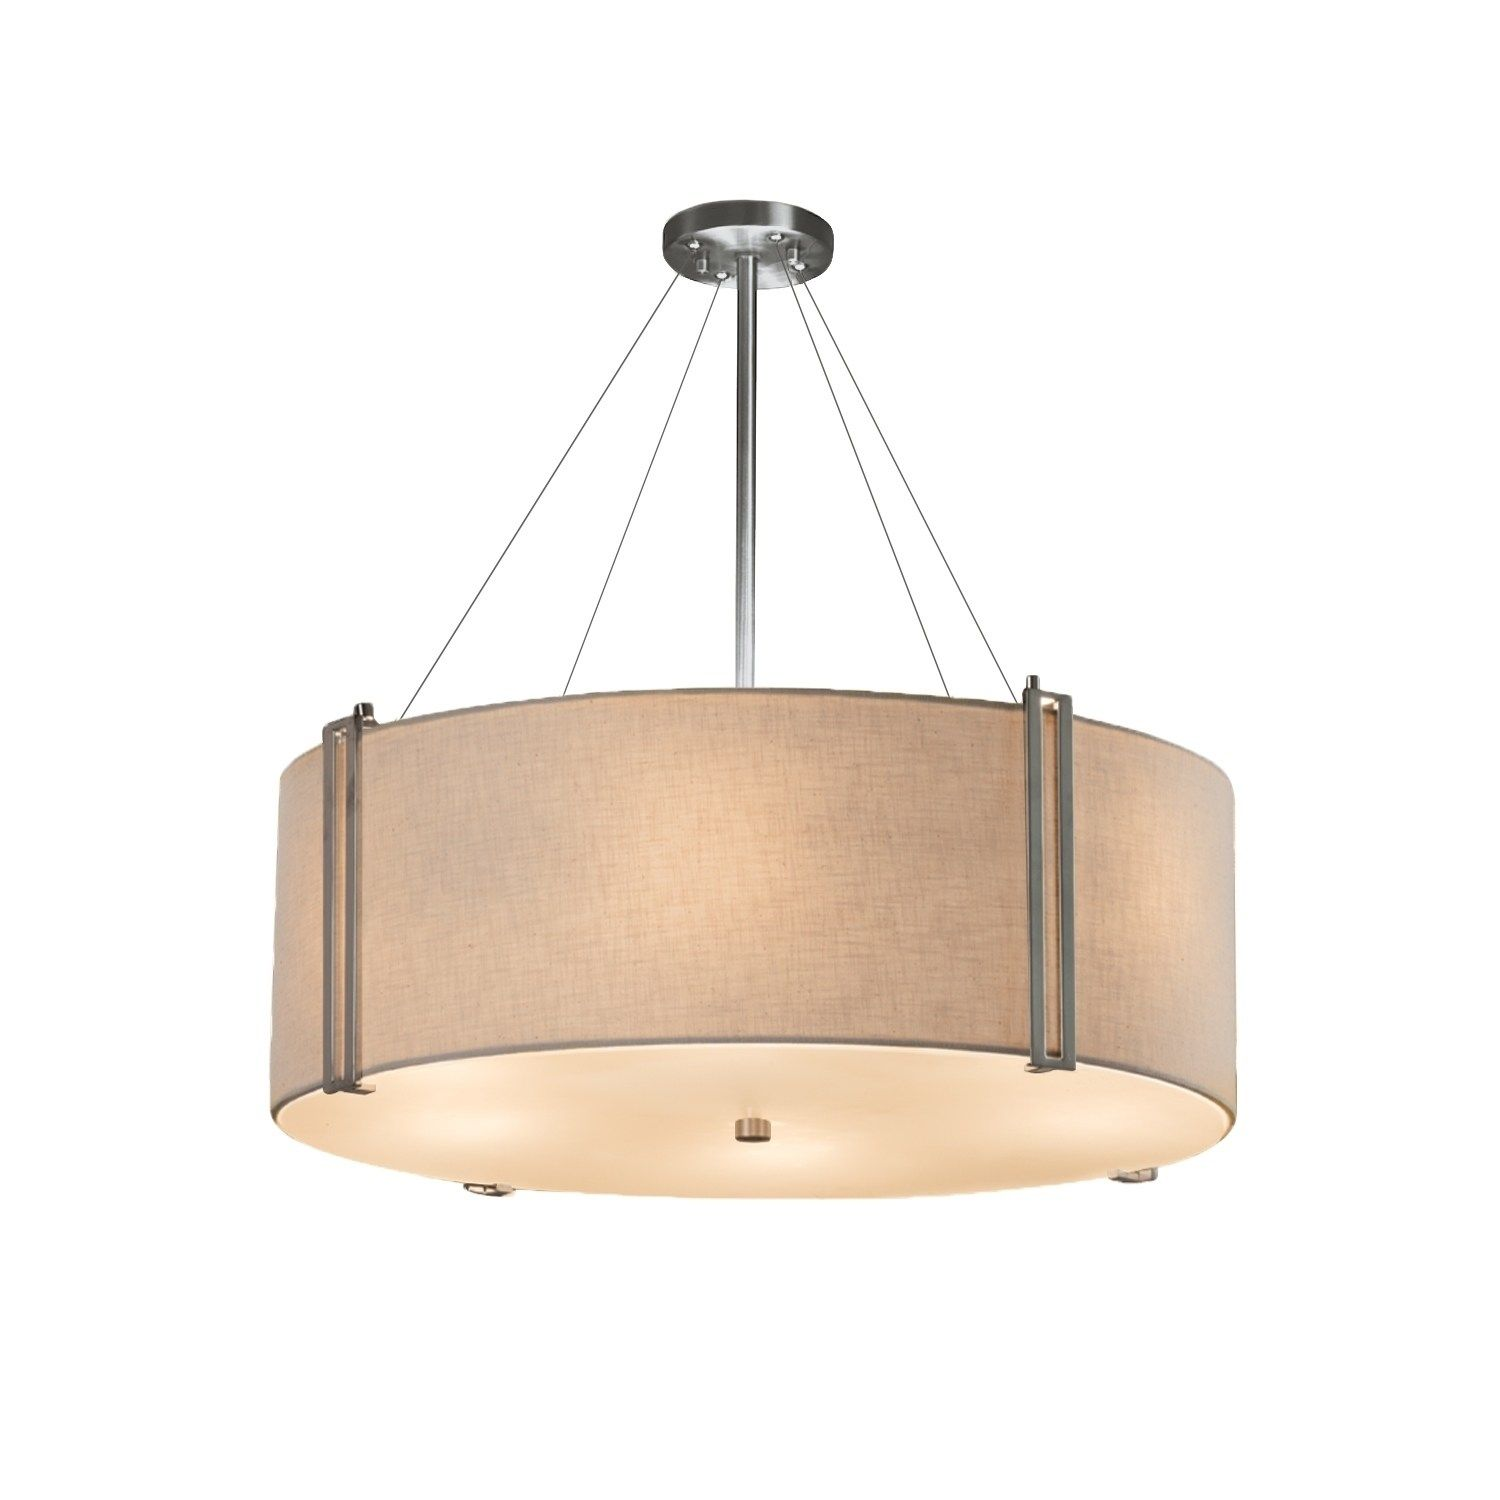 Justice Design Group Textile Reveal 48 Inch Brushed Nickel Pendant